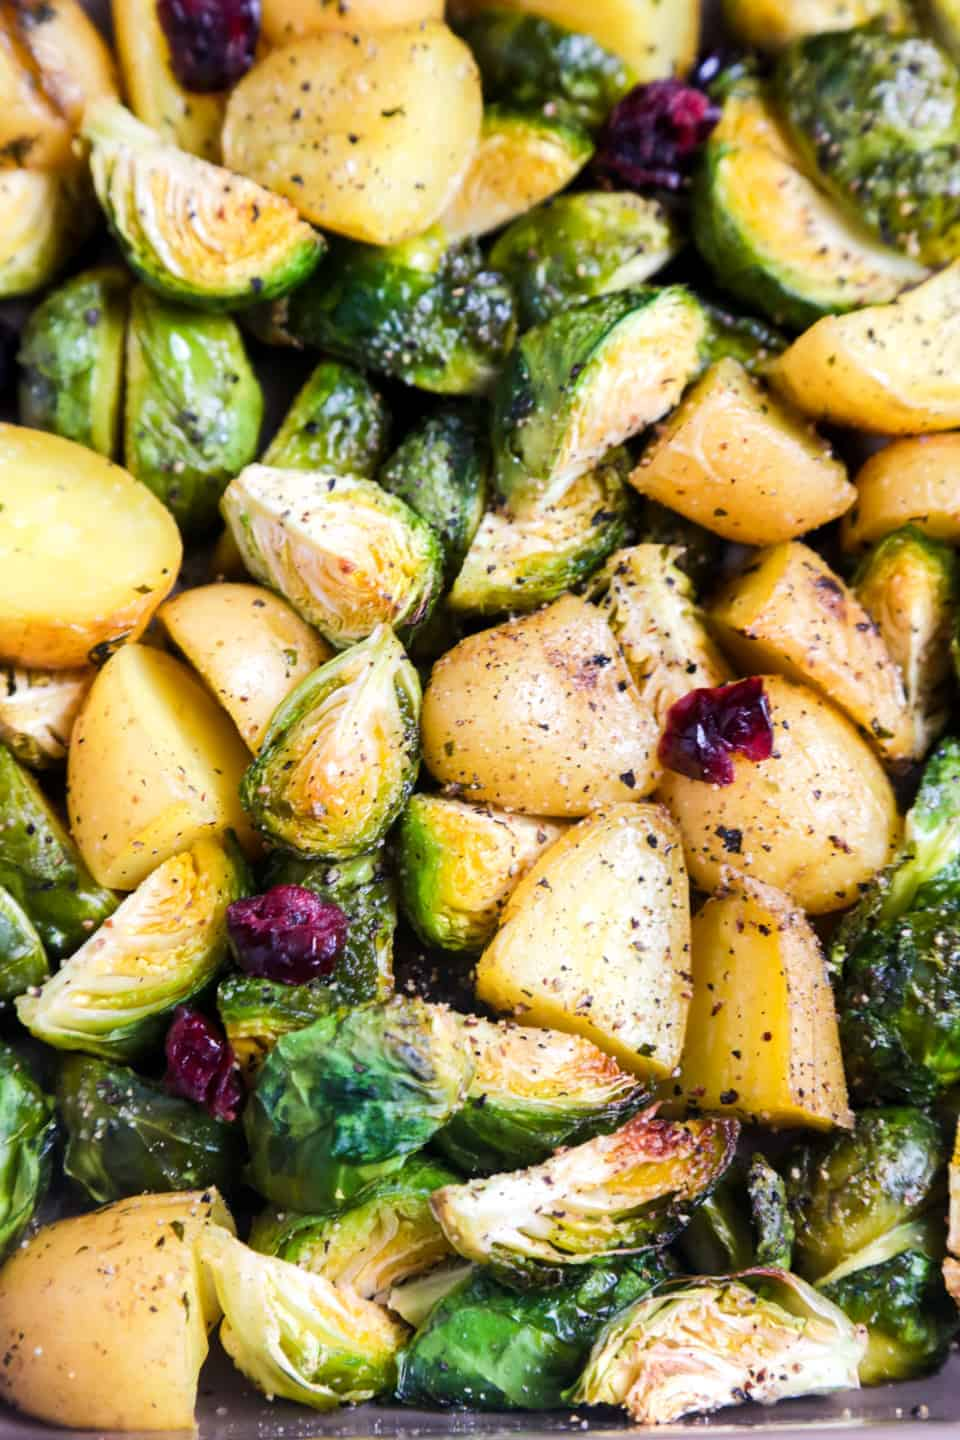 Roasted Brussels sprouts with potatoes and cranberries Little Sunny Kitchen